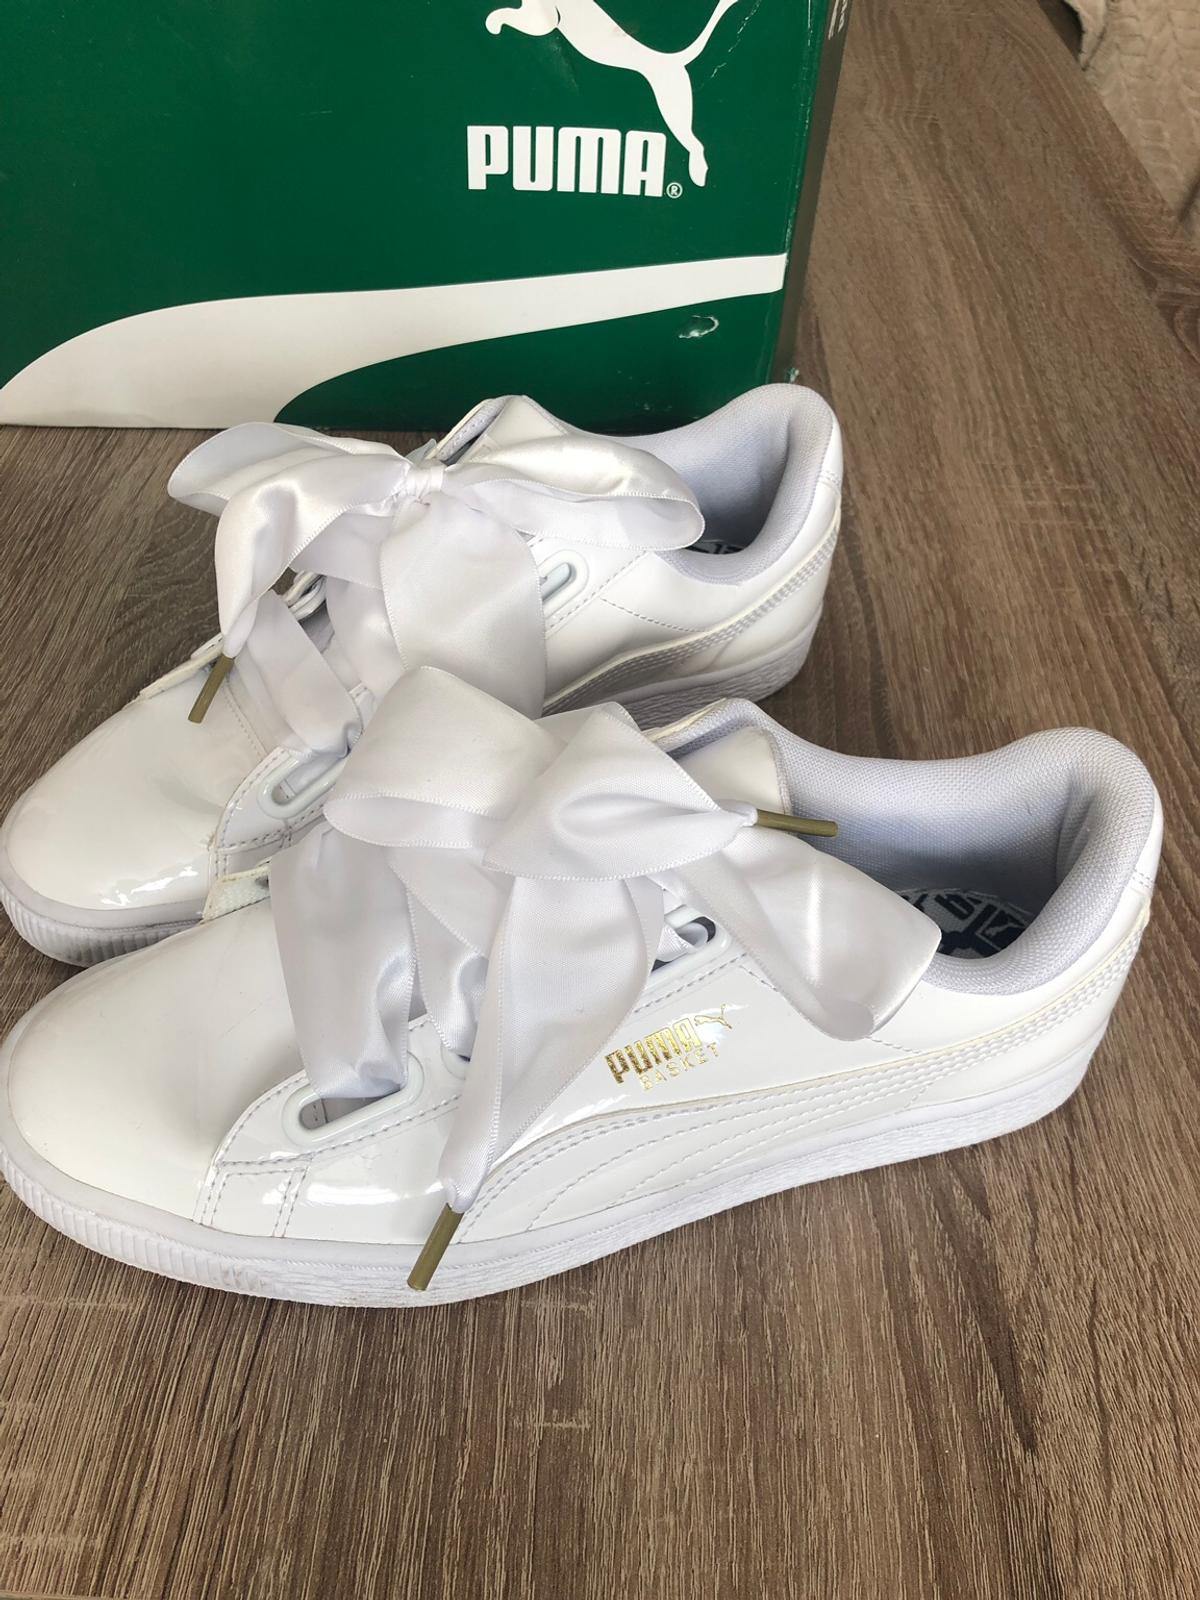 newest 7c06b 83144 Ladies Puma Basket Heart trainers size 5 in WV14 Dudley for ...